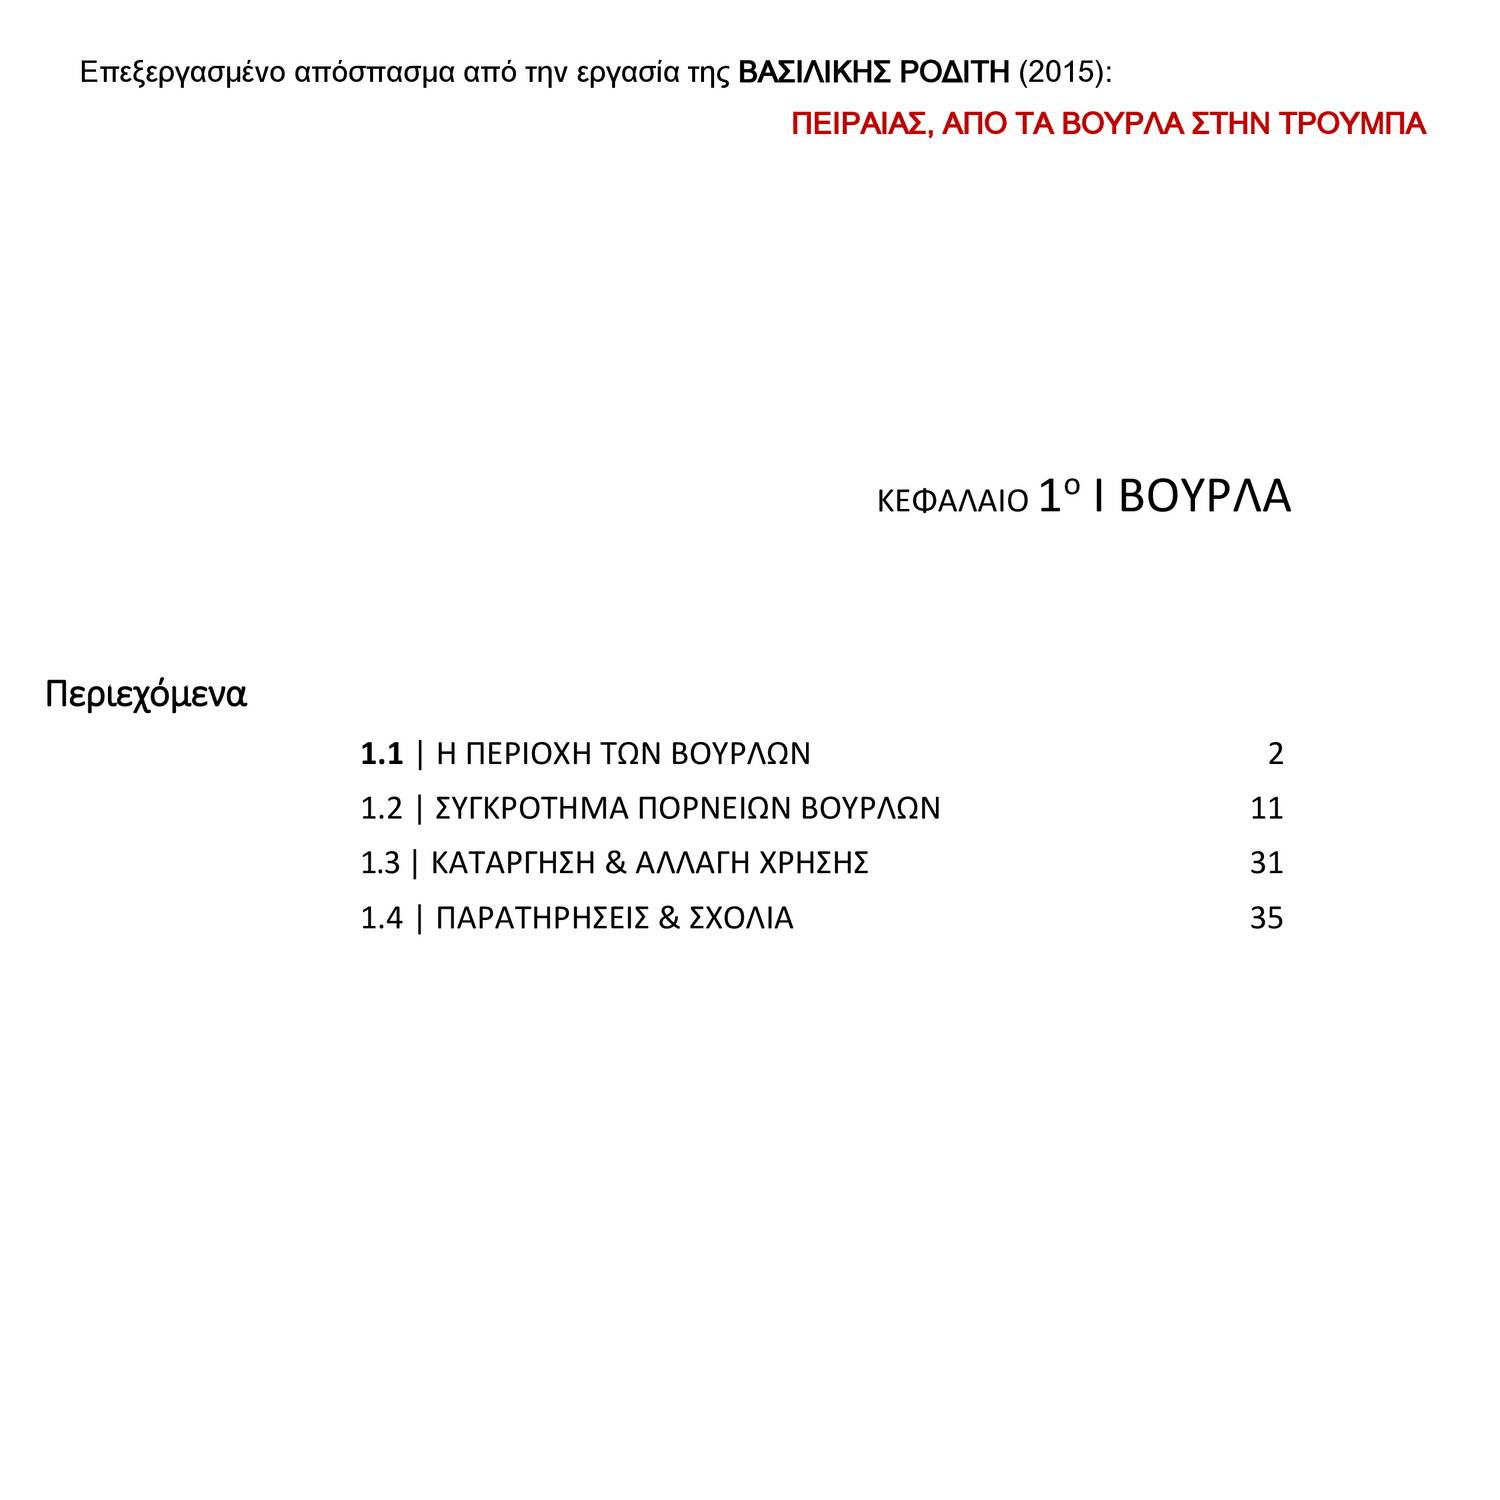 Edited Extract from the thesis of mrs. Vasiliki Roditi ...